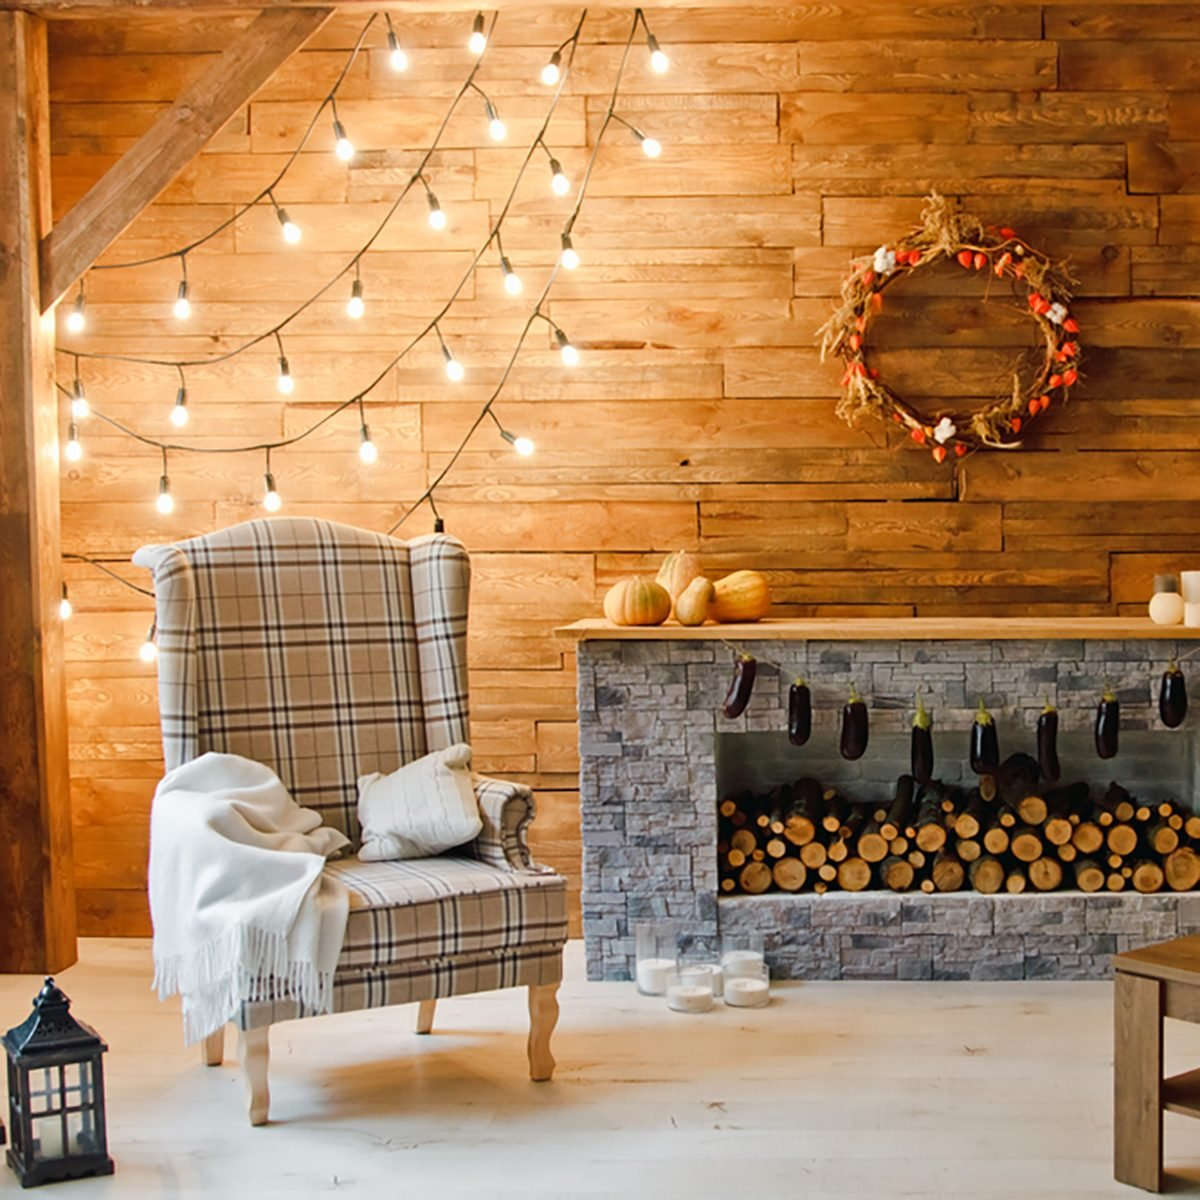 String lights are perfect for quick decoration before the party. Source: Taste of Home